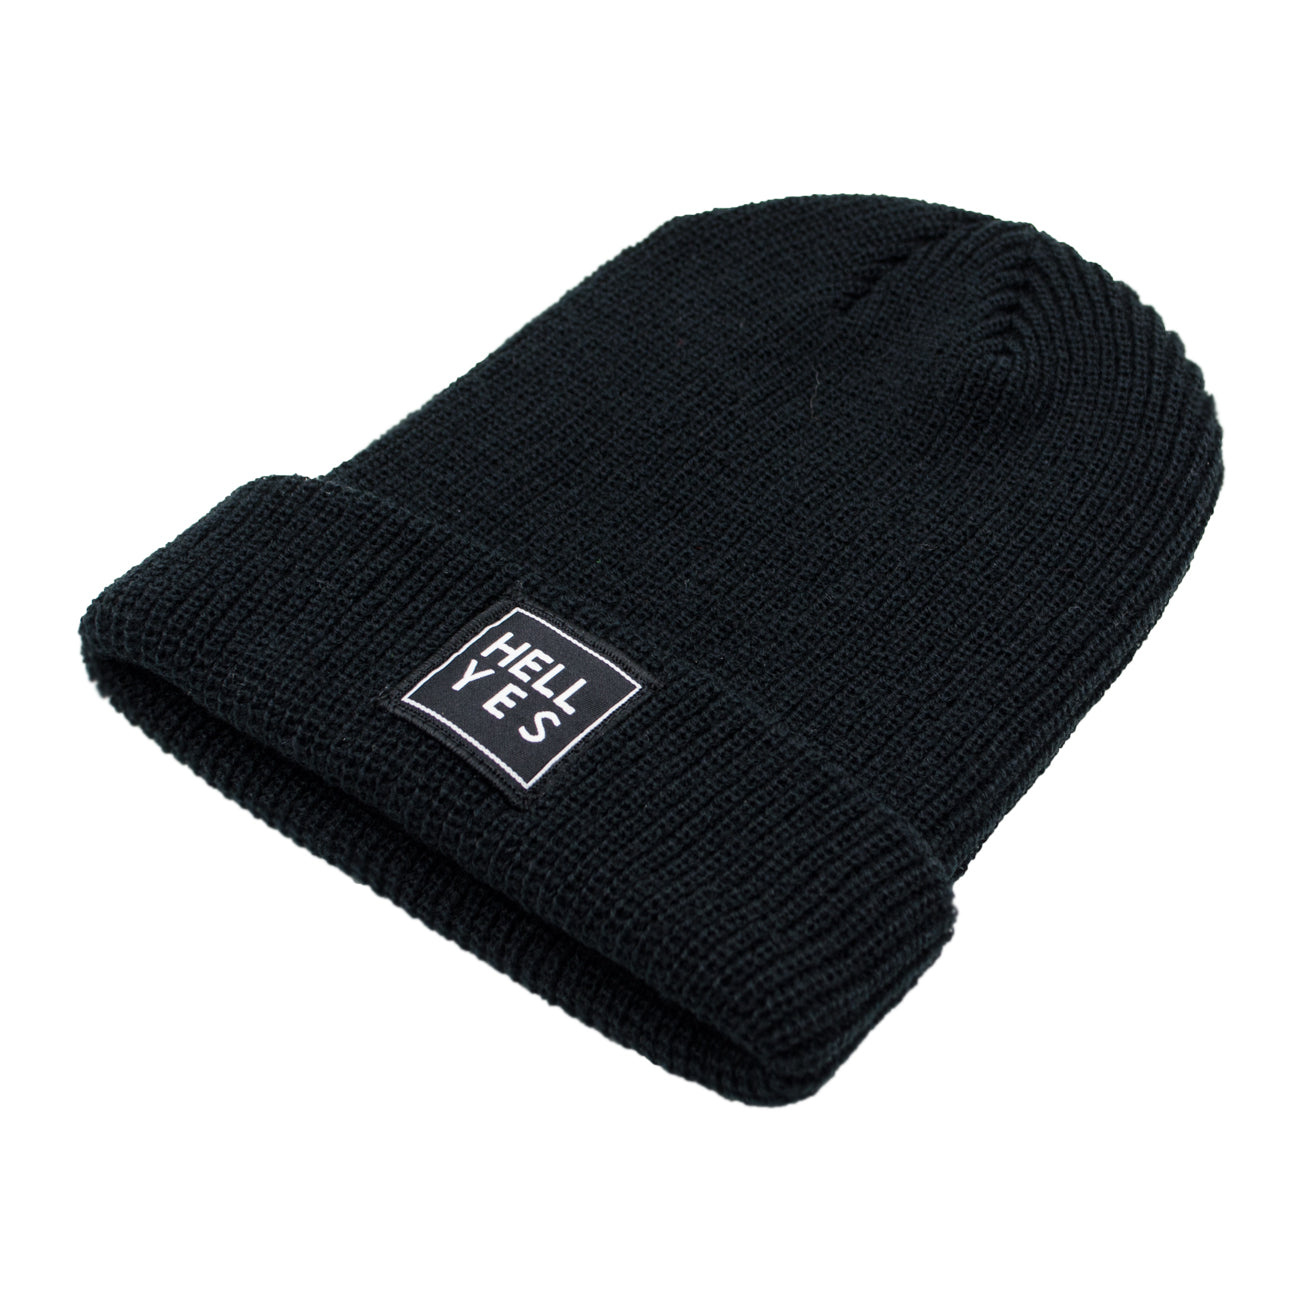 HELL YES BEANIE